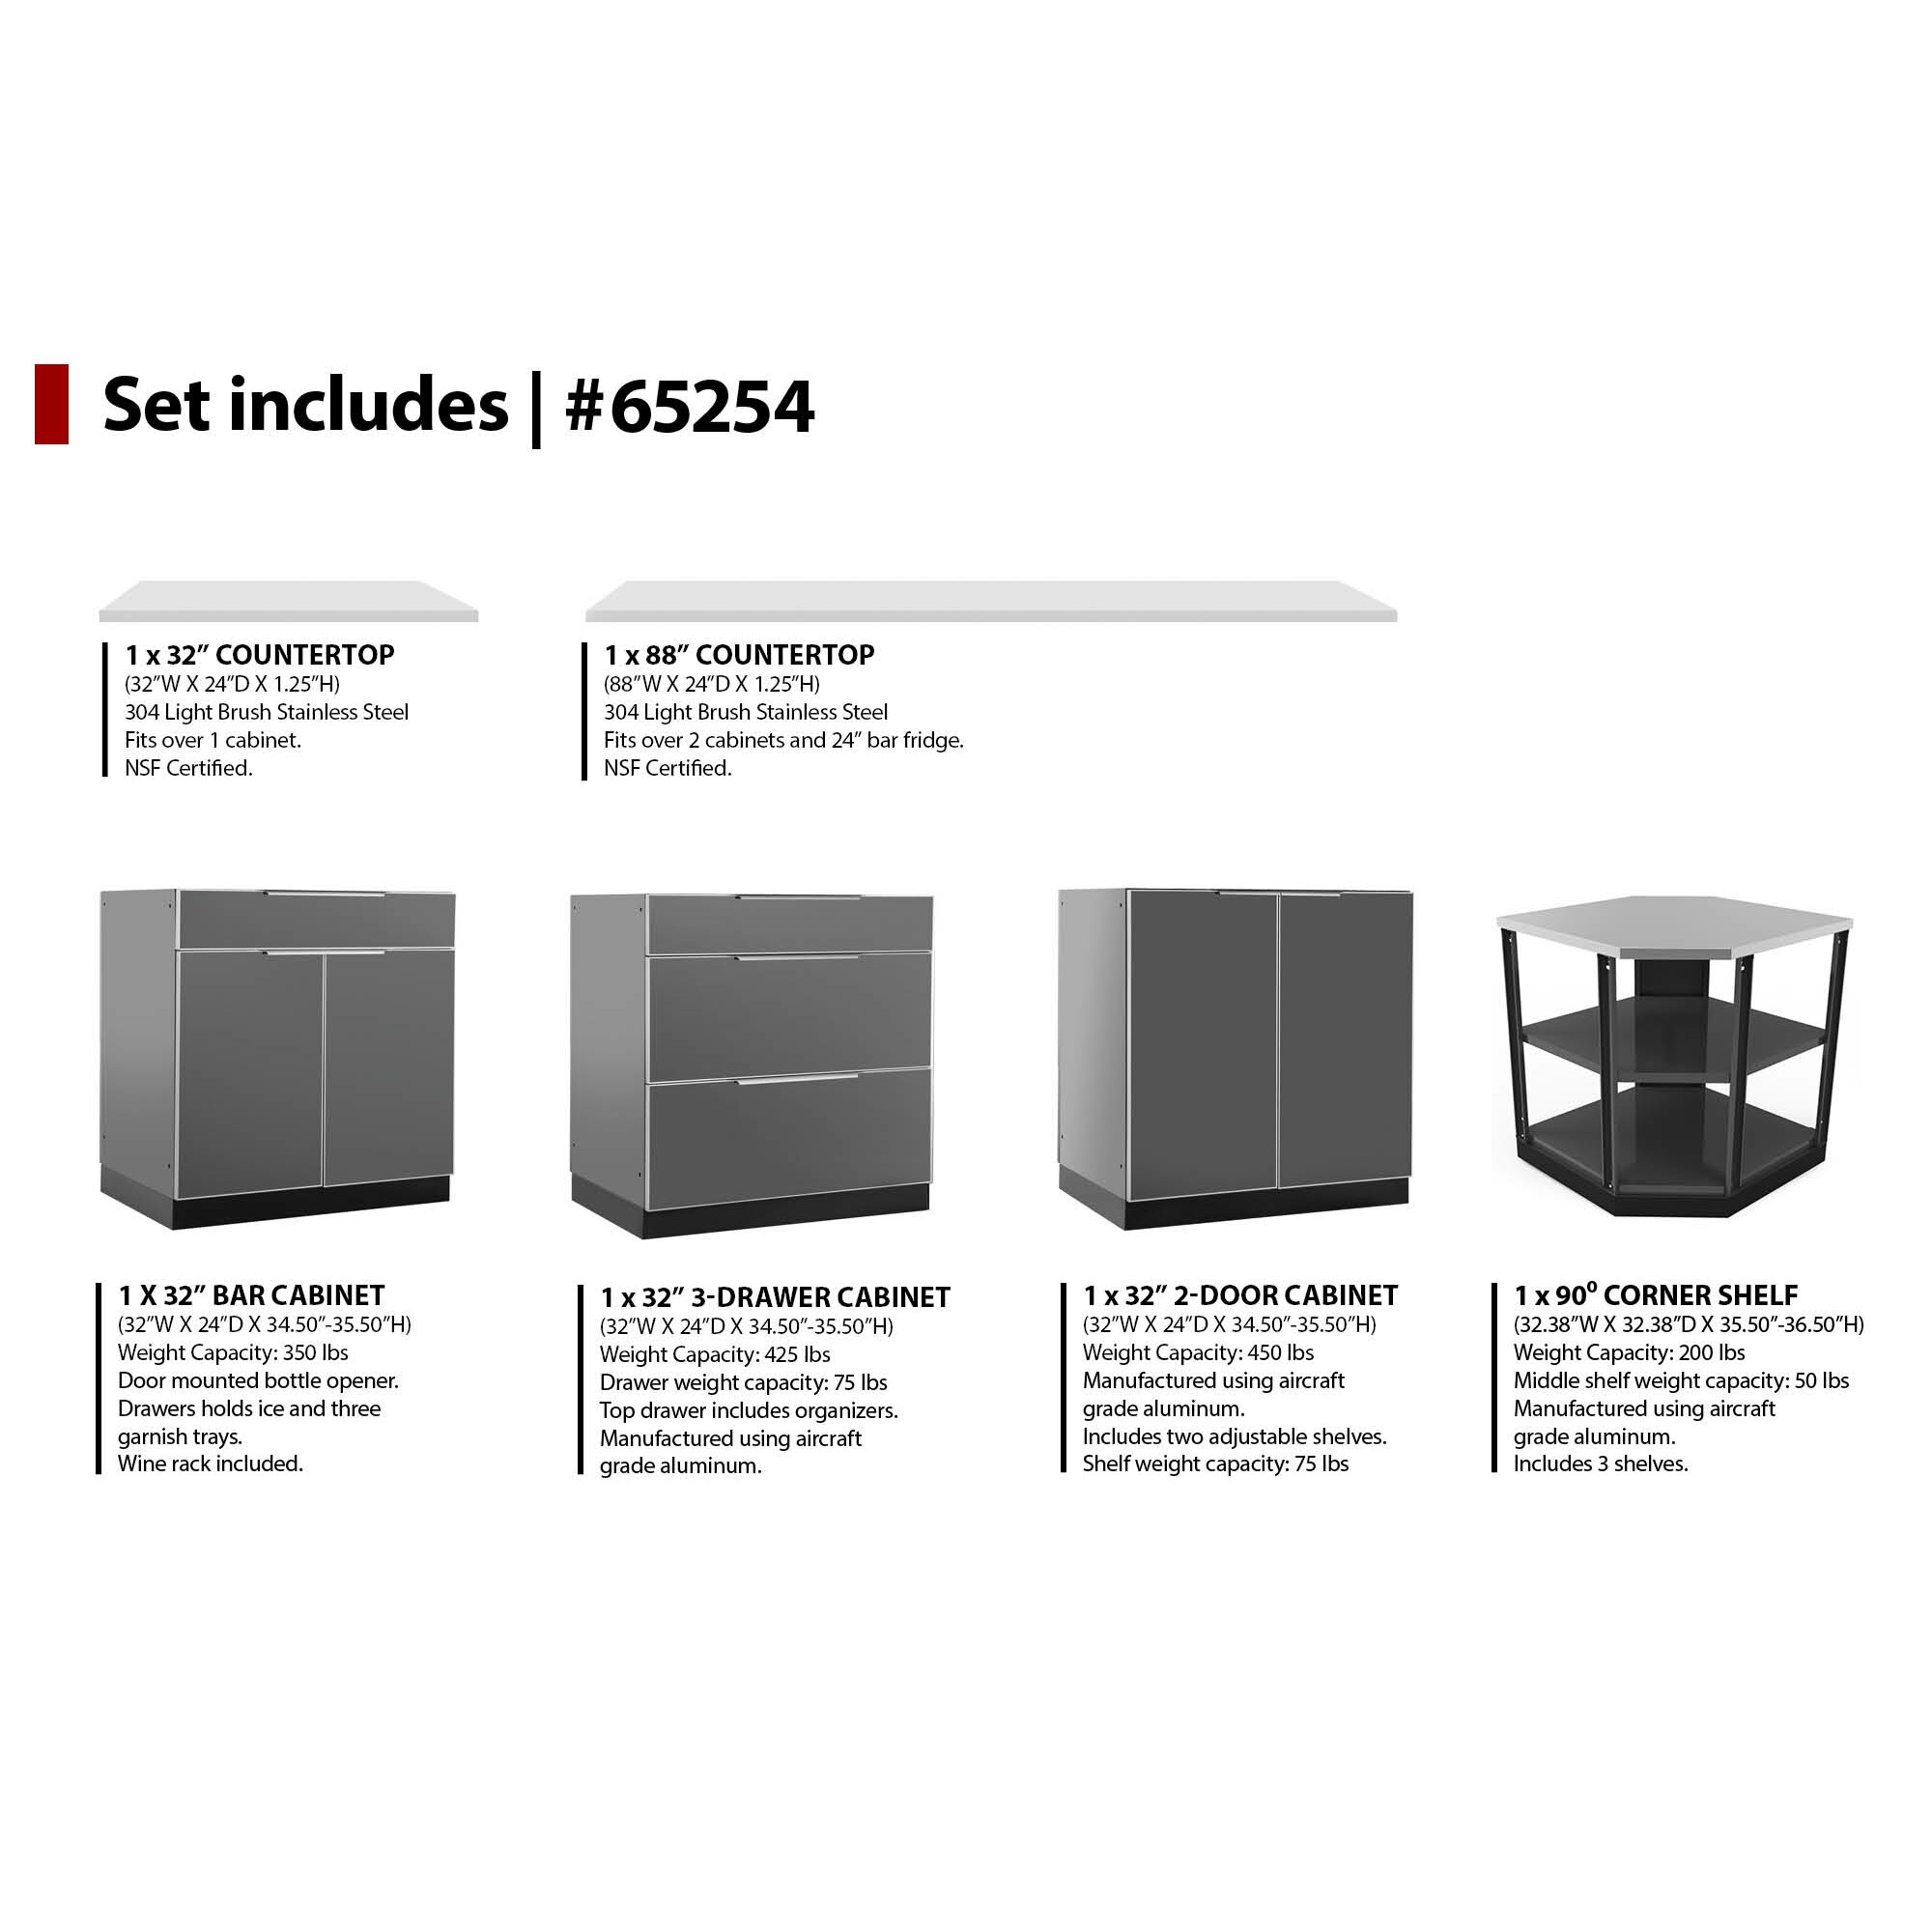 newage products 184 w x 24 d 6 pieces aluminum outdoor kitch